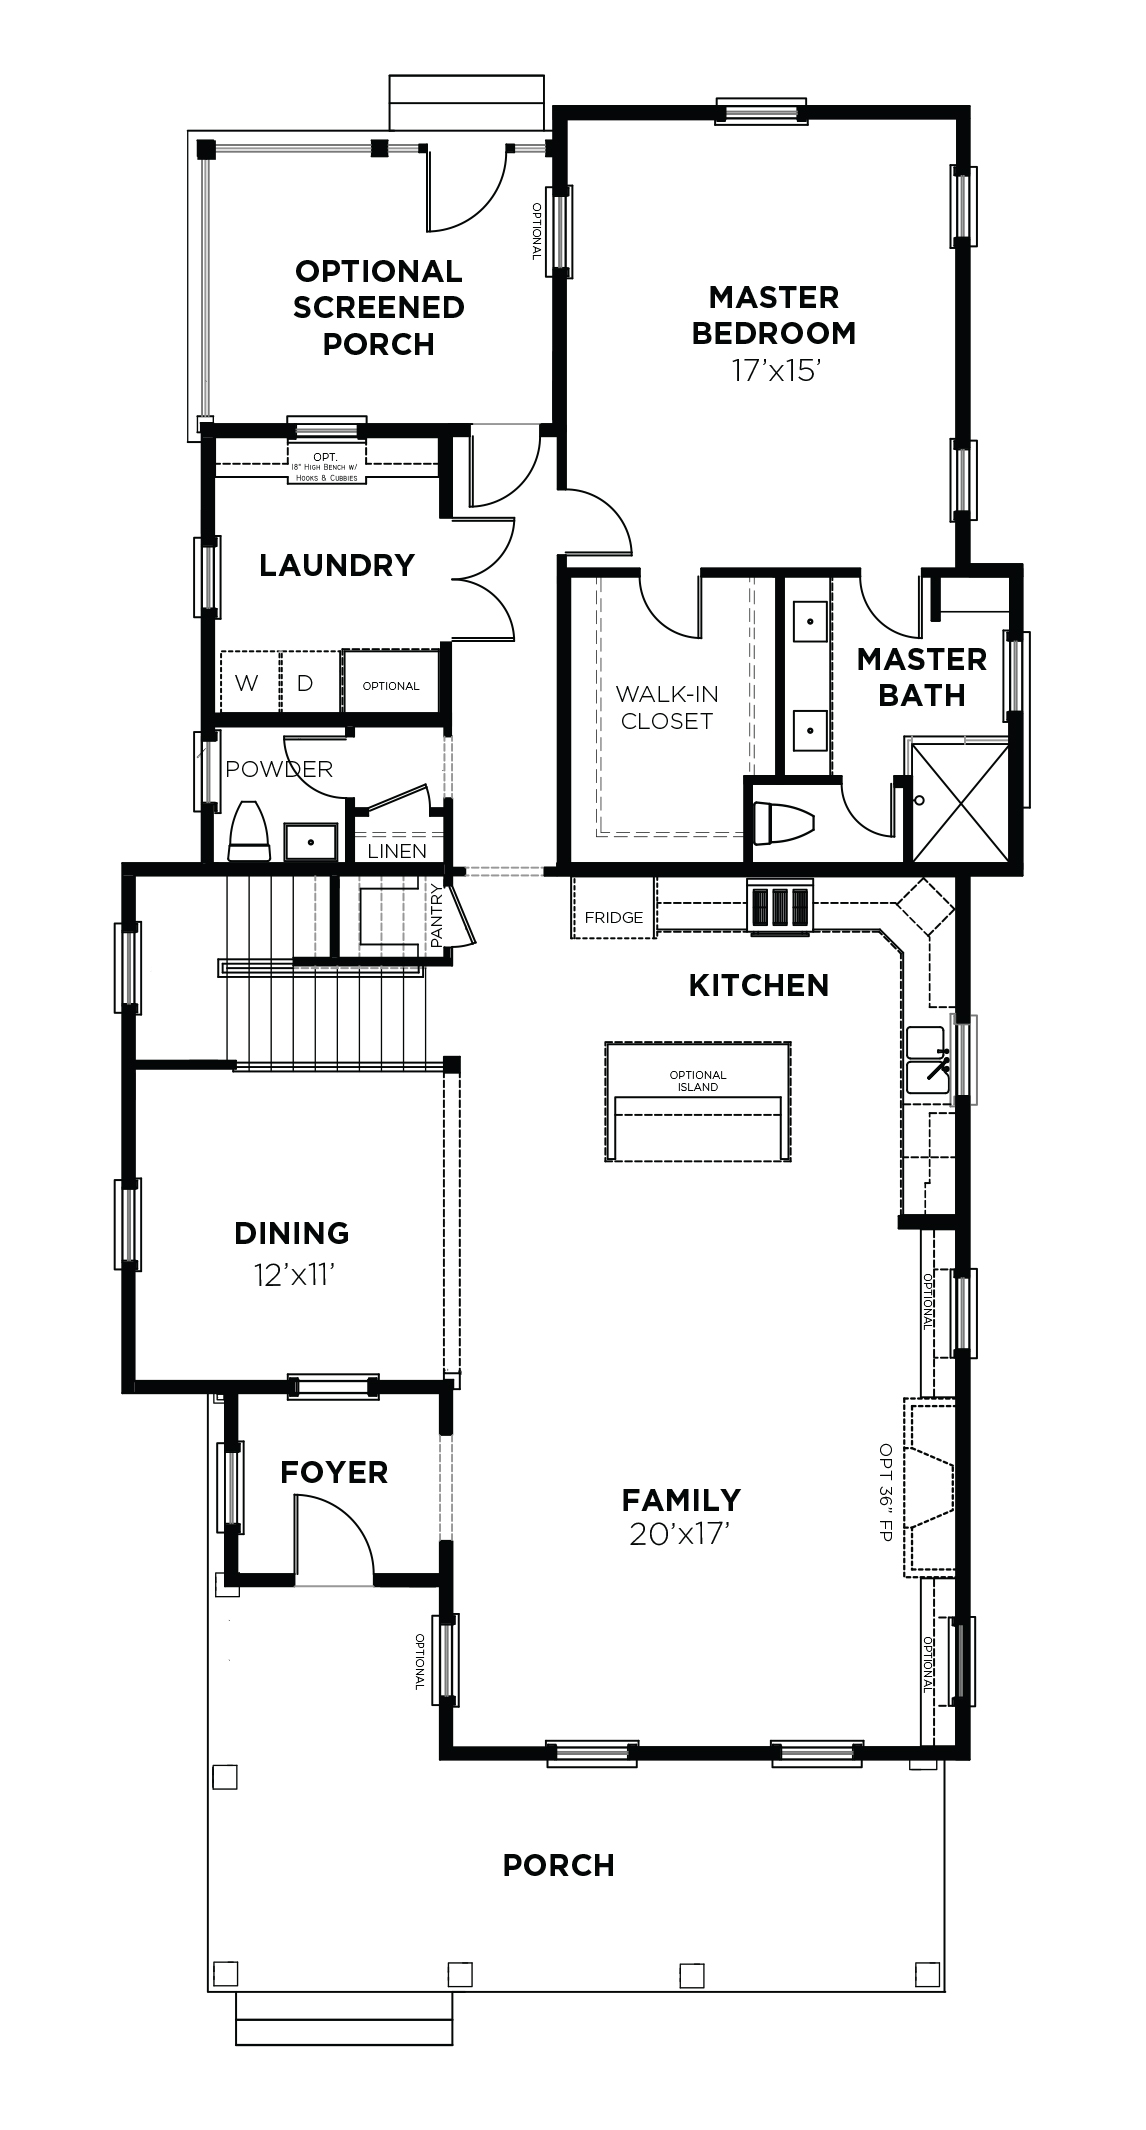 Acorn Plan - a Saussy Burbank First Floor Plan in Summervile, SC